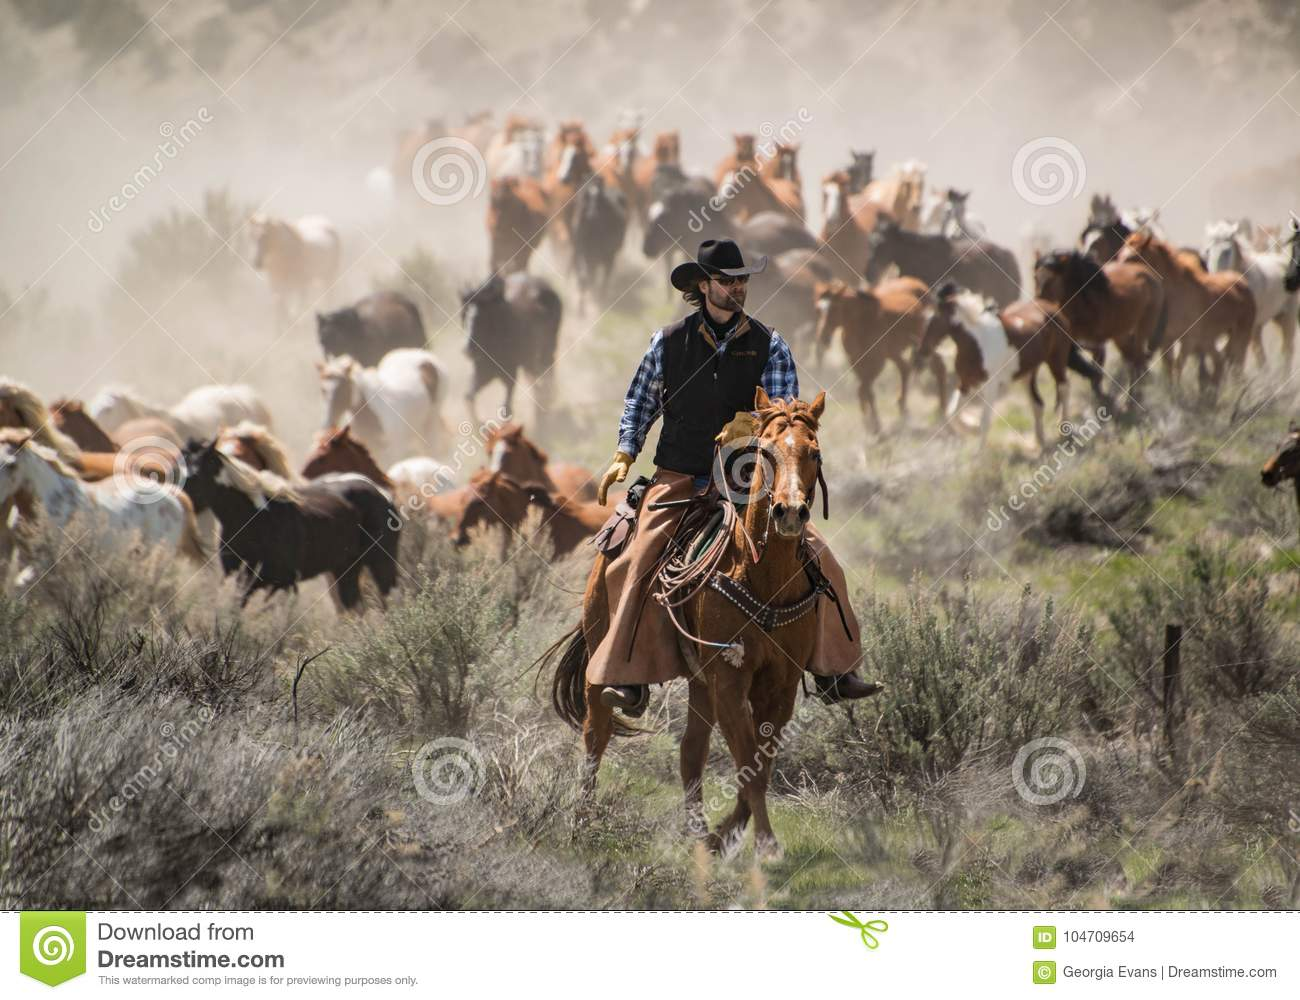 Cowboy with black hat and sorrel horse leading horse herd at a gallop